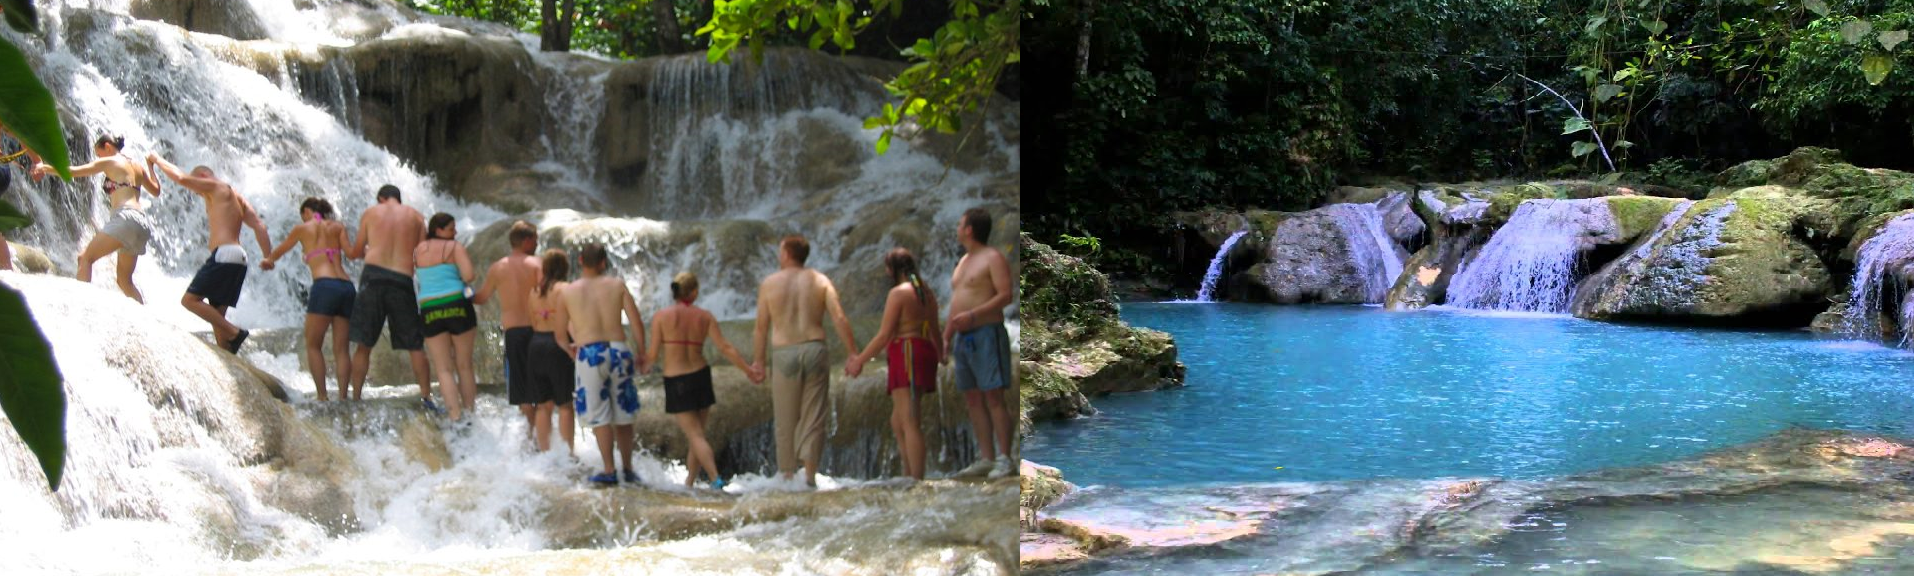 DUNN'S RIVER FALLS & BLUE HOLE TOUR